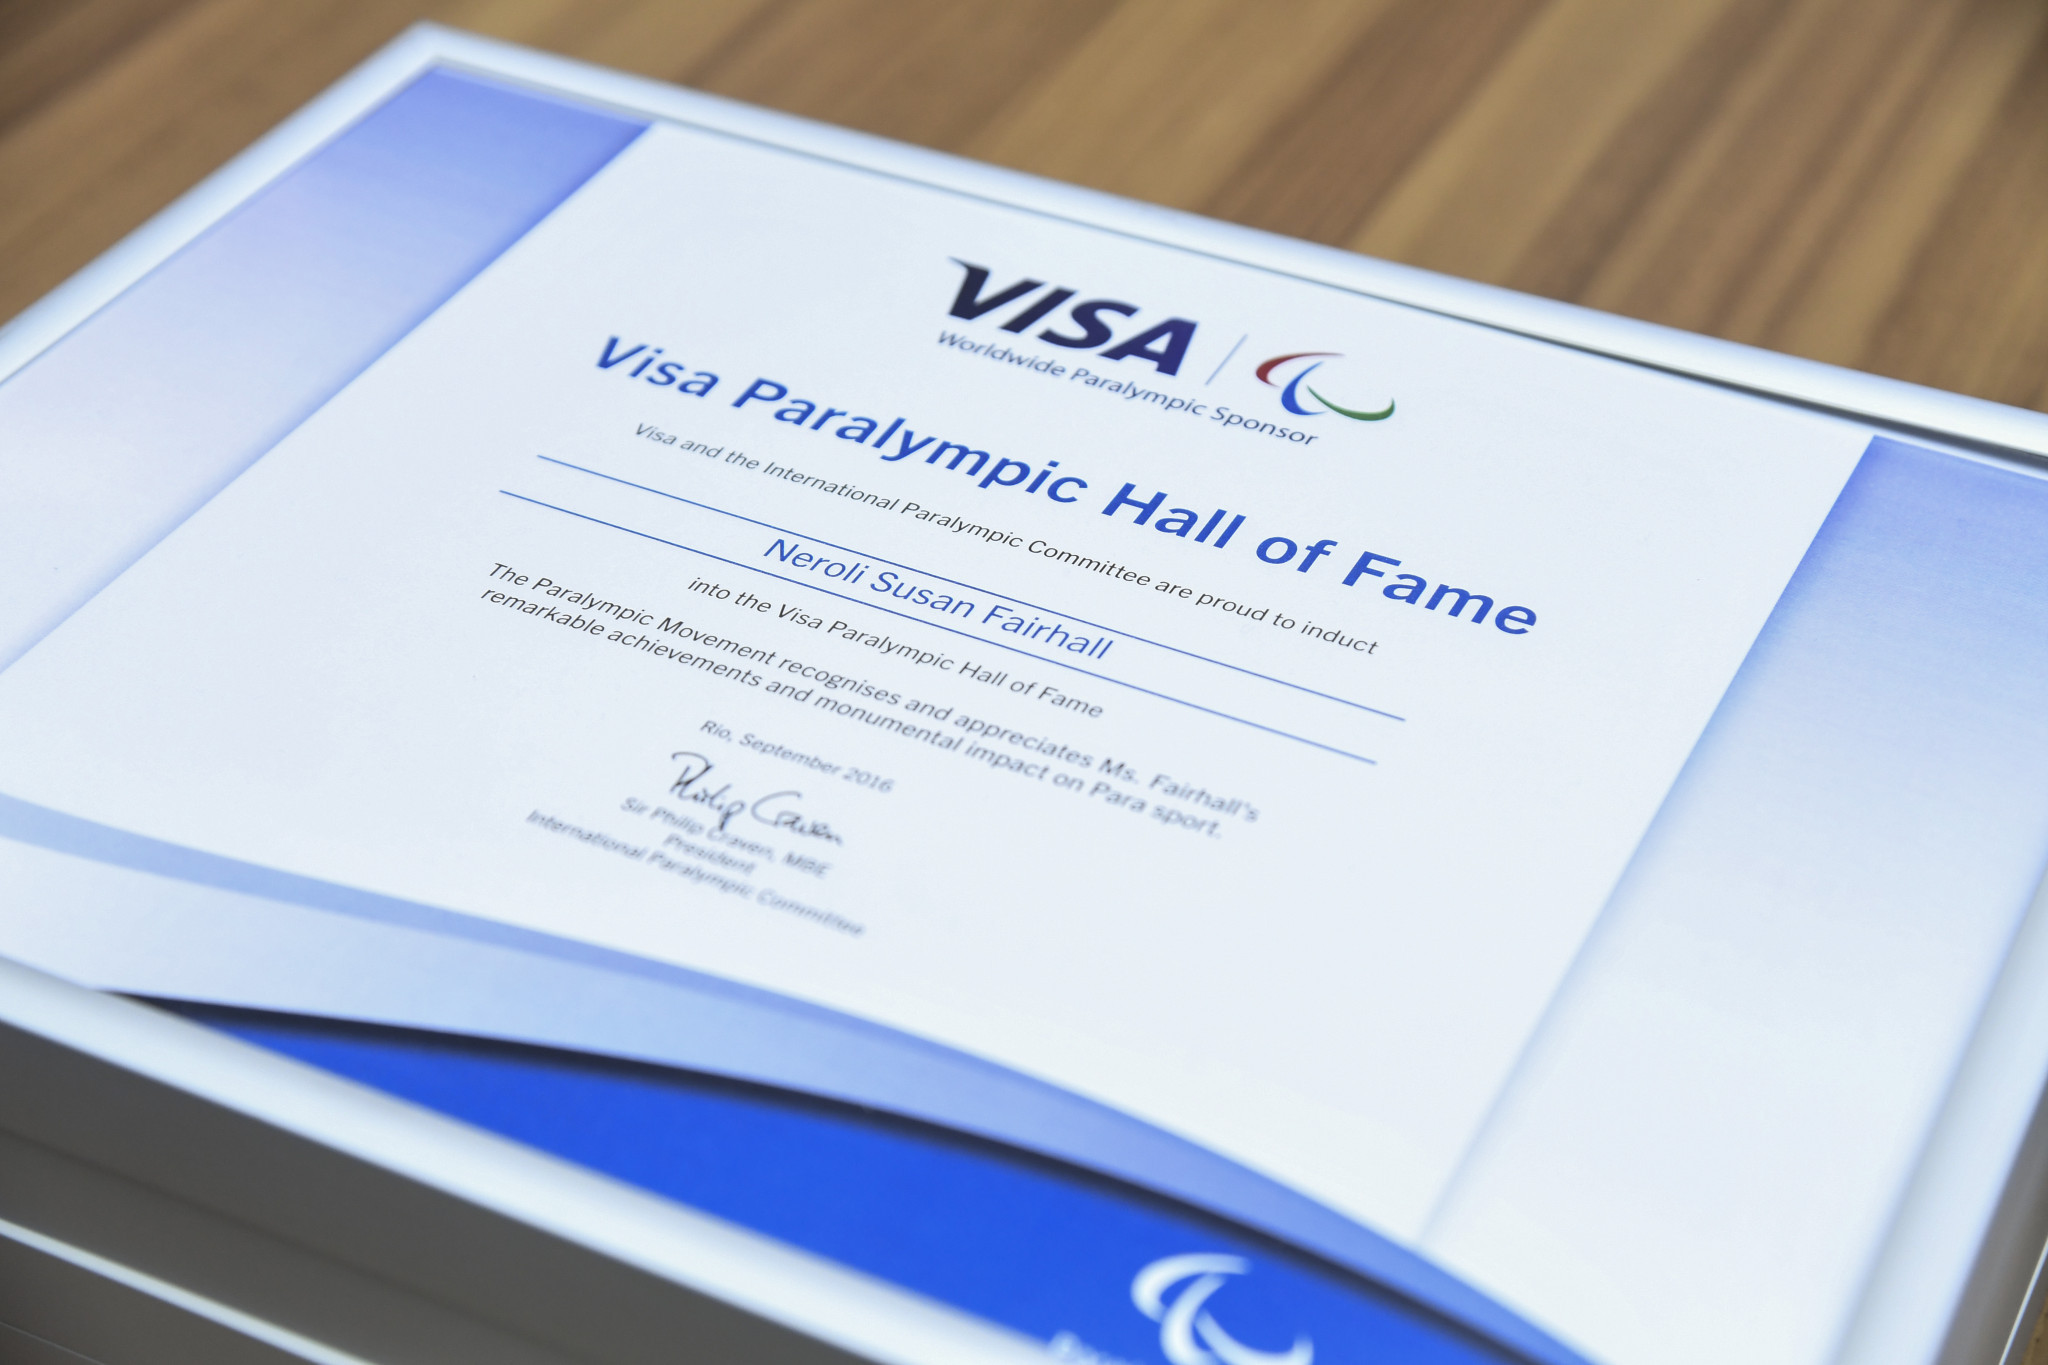 Visa was the first global sponsor of the International Paralympic Committee and has been a sponsor of the Paralympic Games since 2002 ©Getty Images